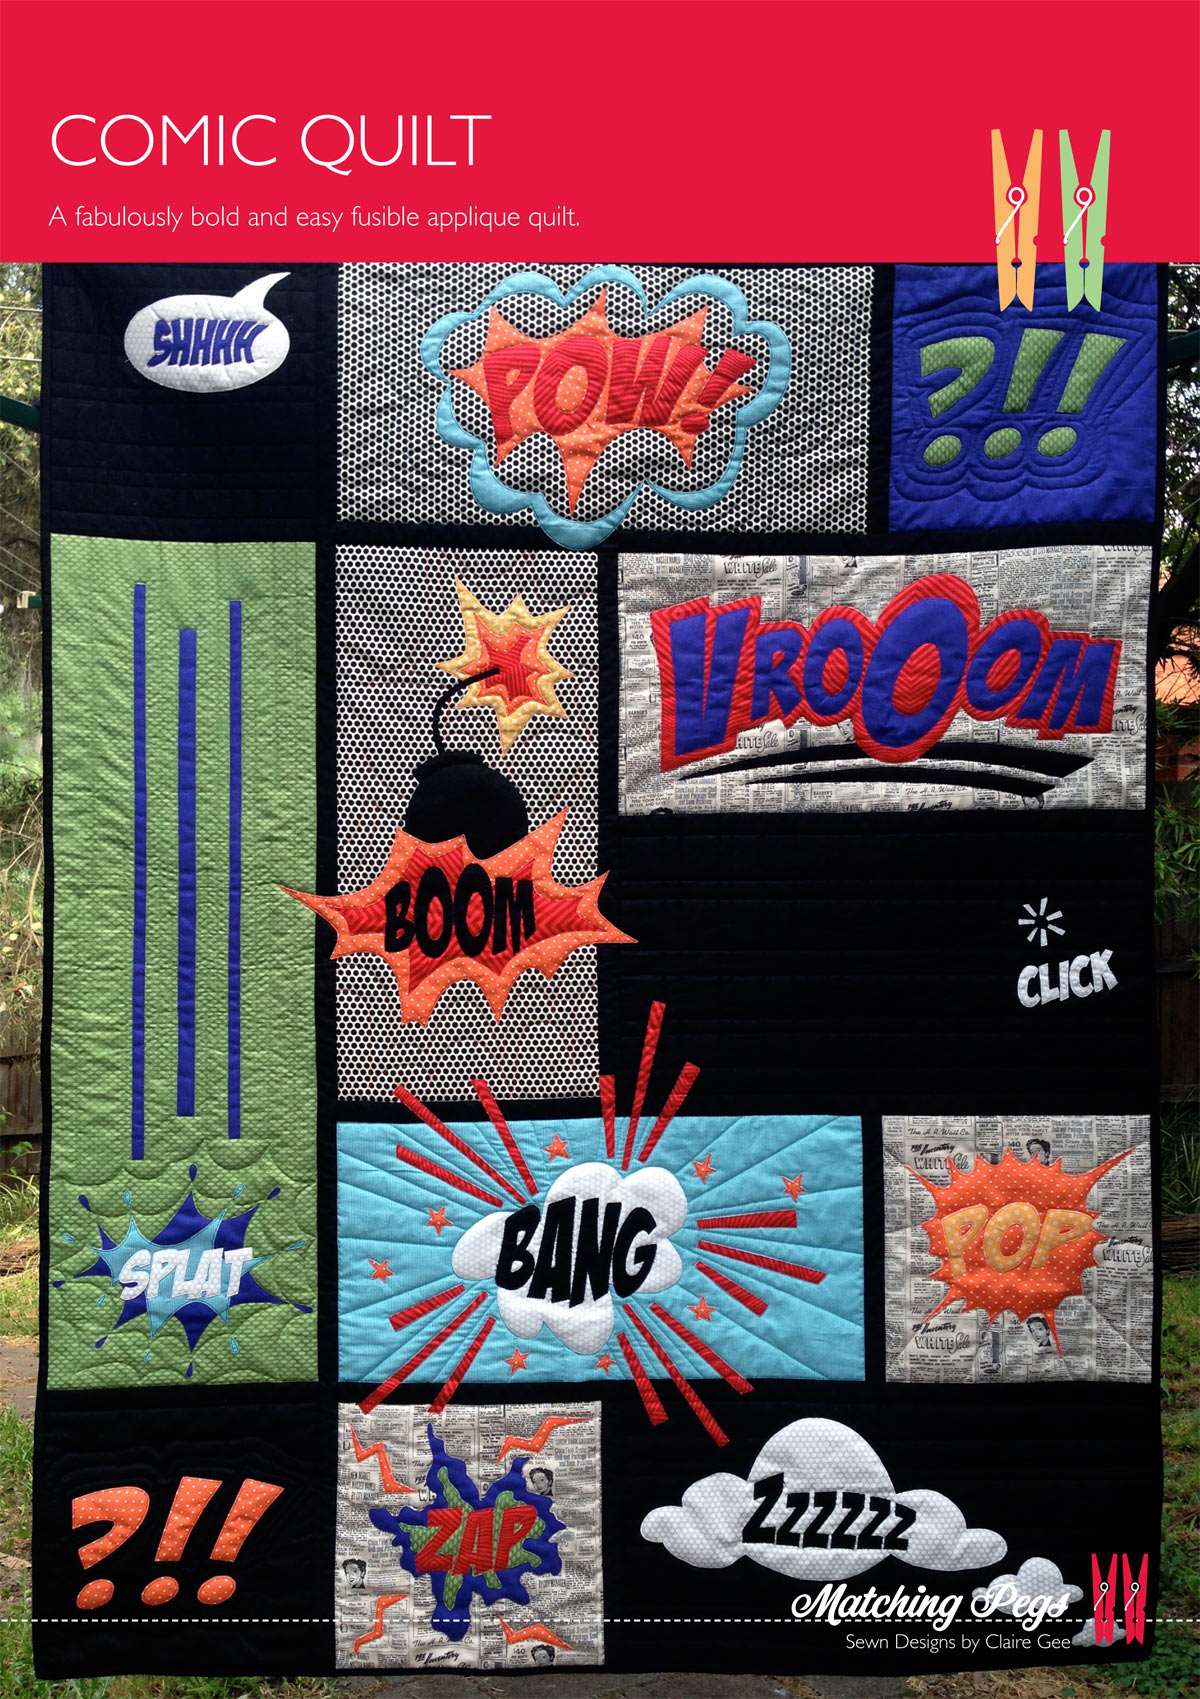 Comic Quilt Matching Pegs